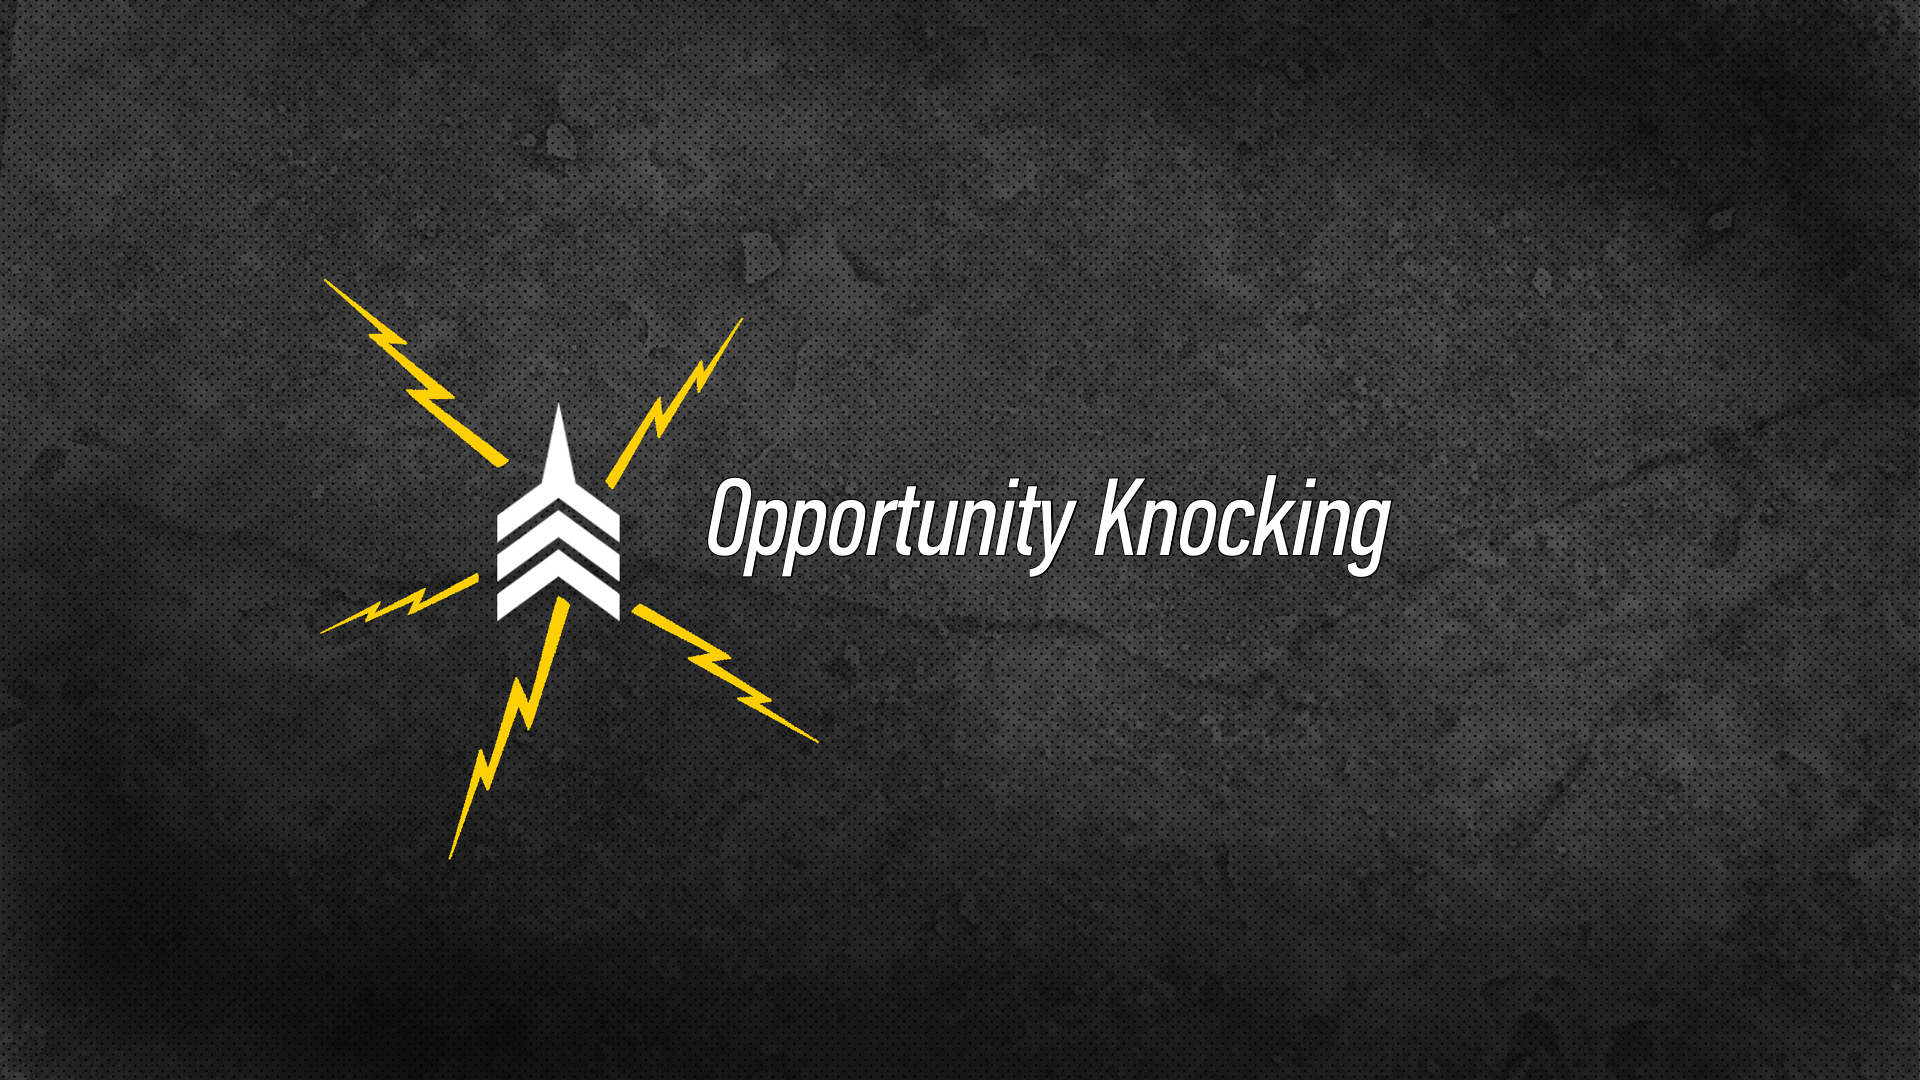 20160828 Opportunity Knocking.png